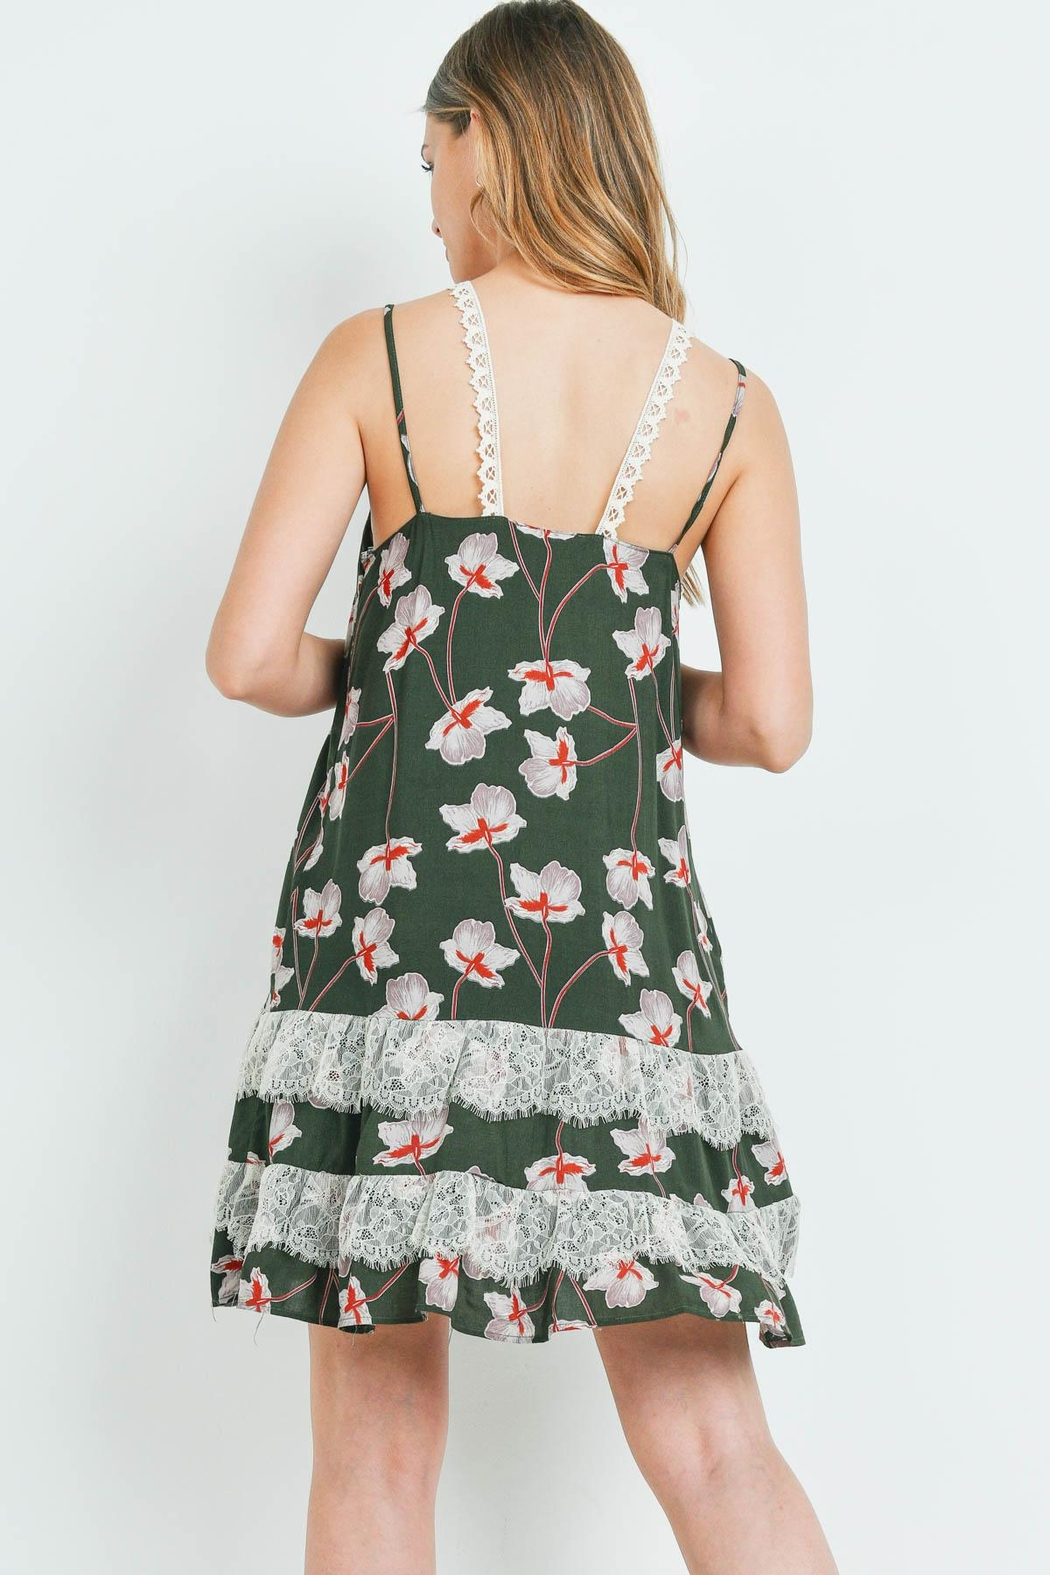 Riah Fashion Dark-Olive With-Flower-Print-Dress - Front Full Image